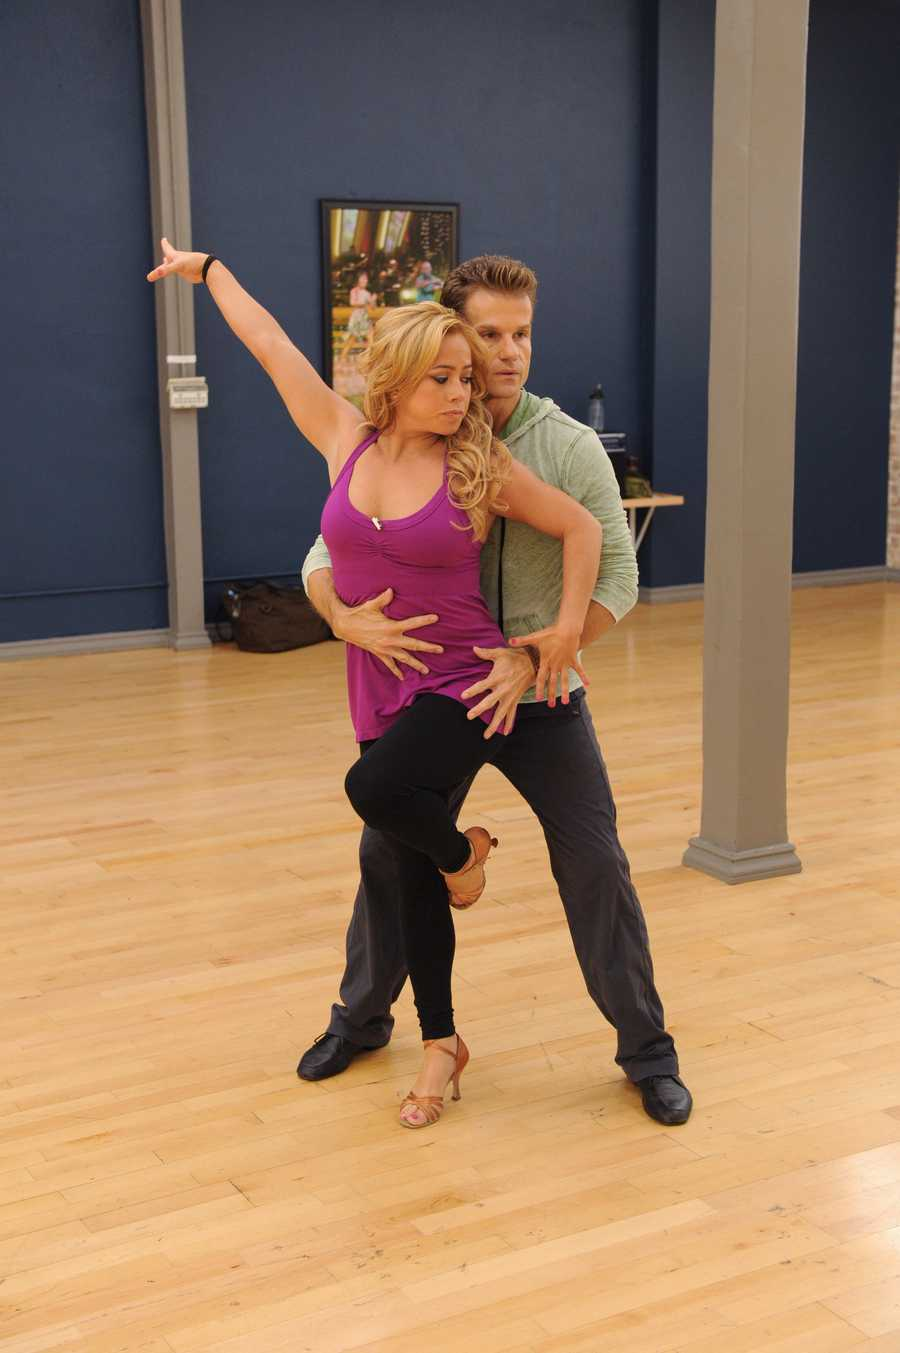 Cheetah Girls member Sabrina Bryan and Louis van Amstel have a lot to work on. Bryan finished lower than any other all-star in her previous season when she placed seventh.